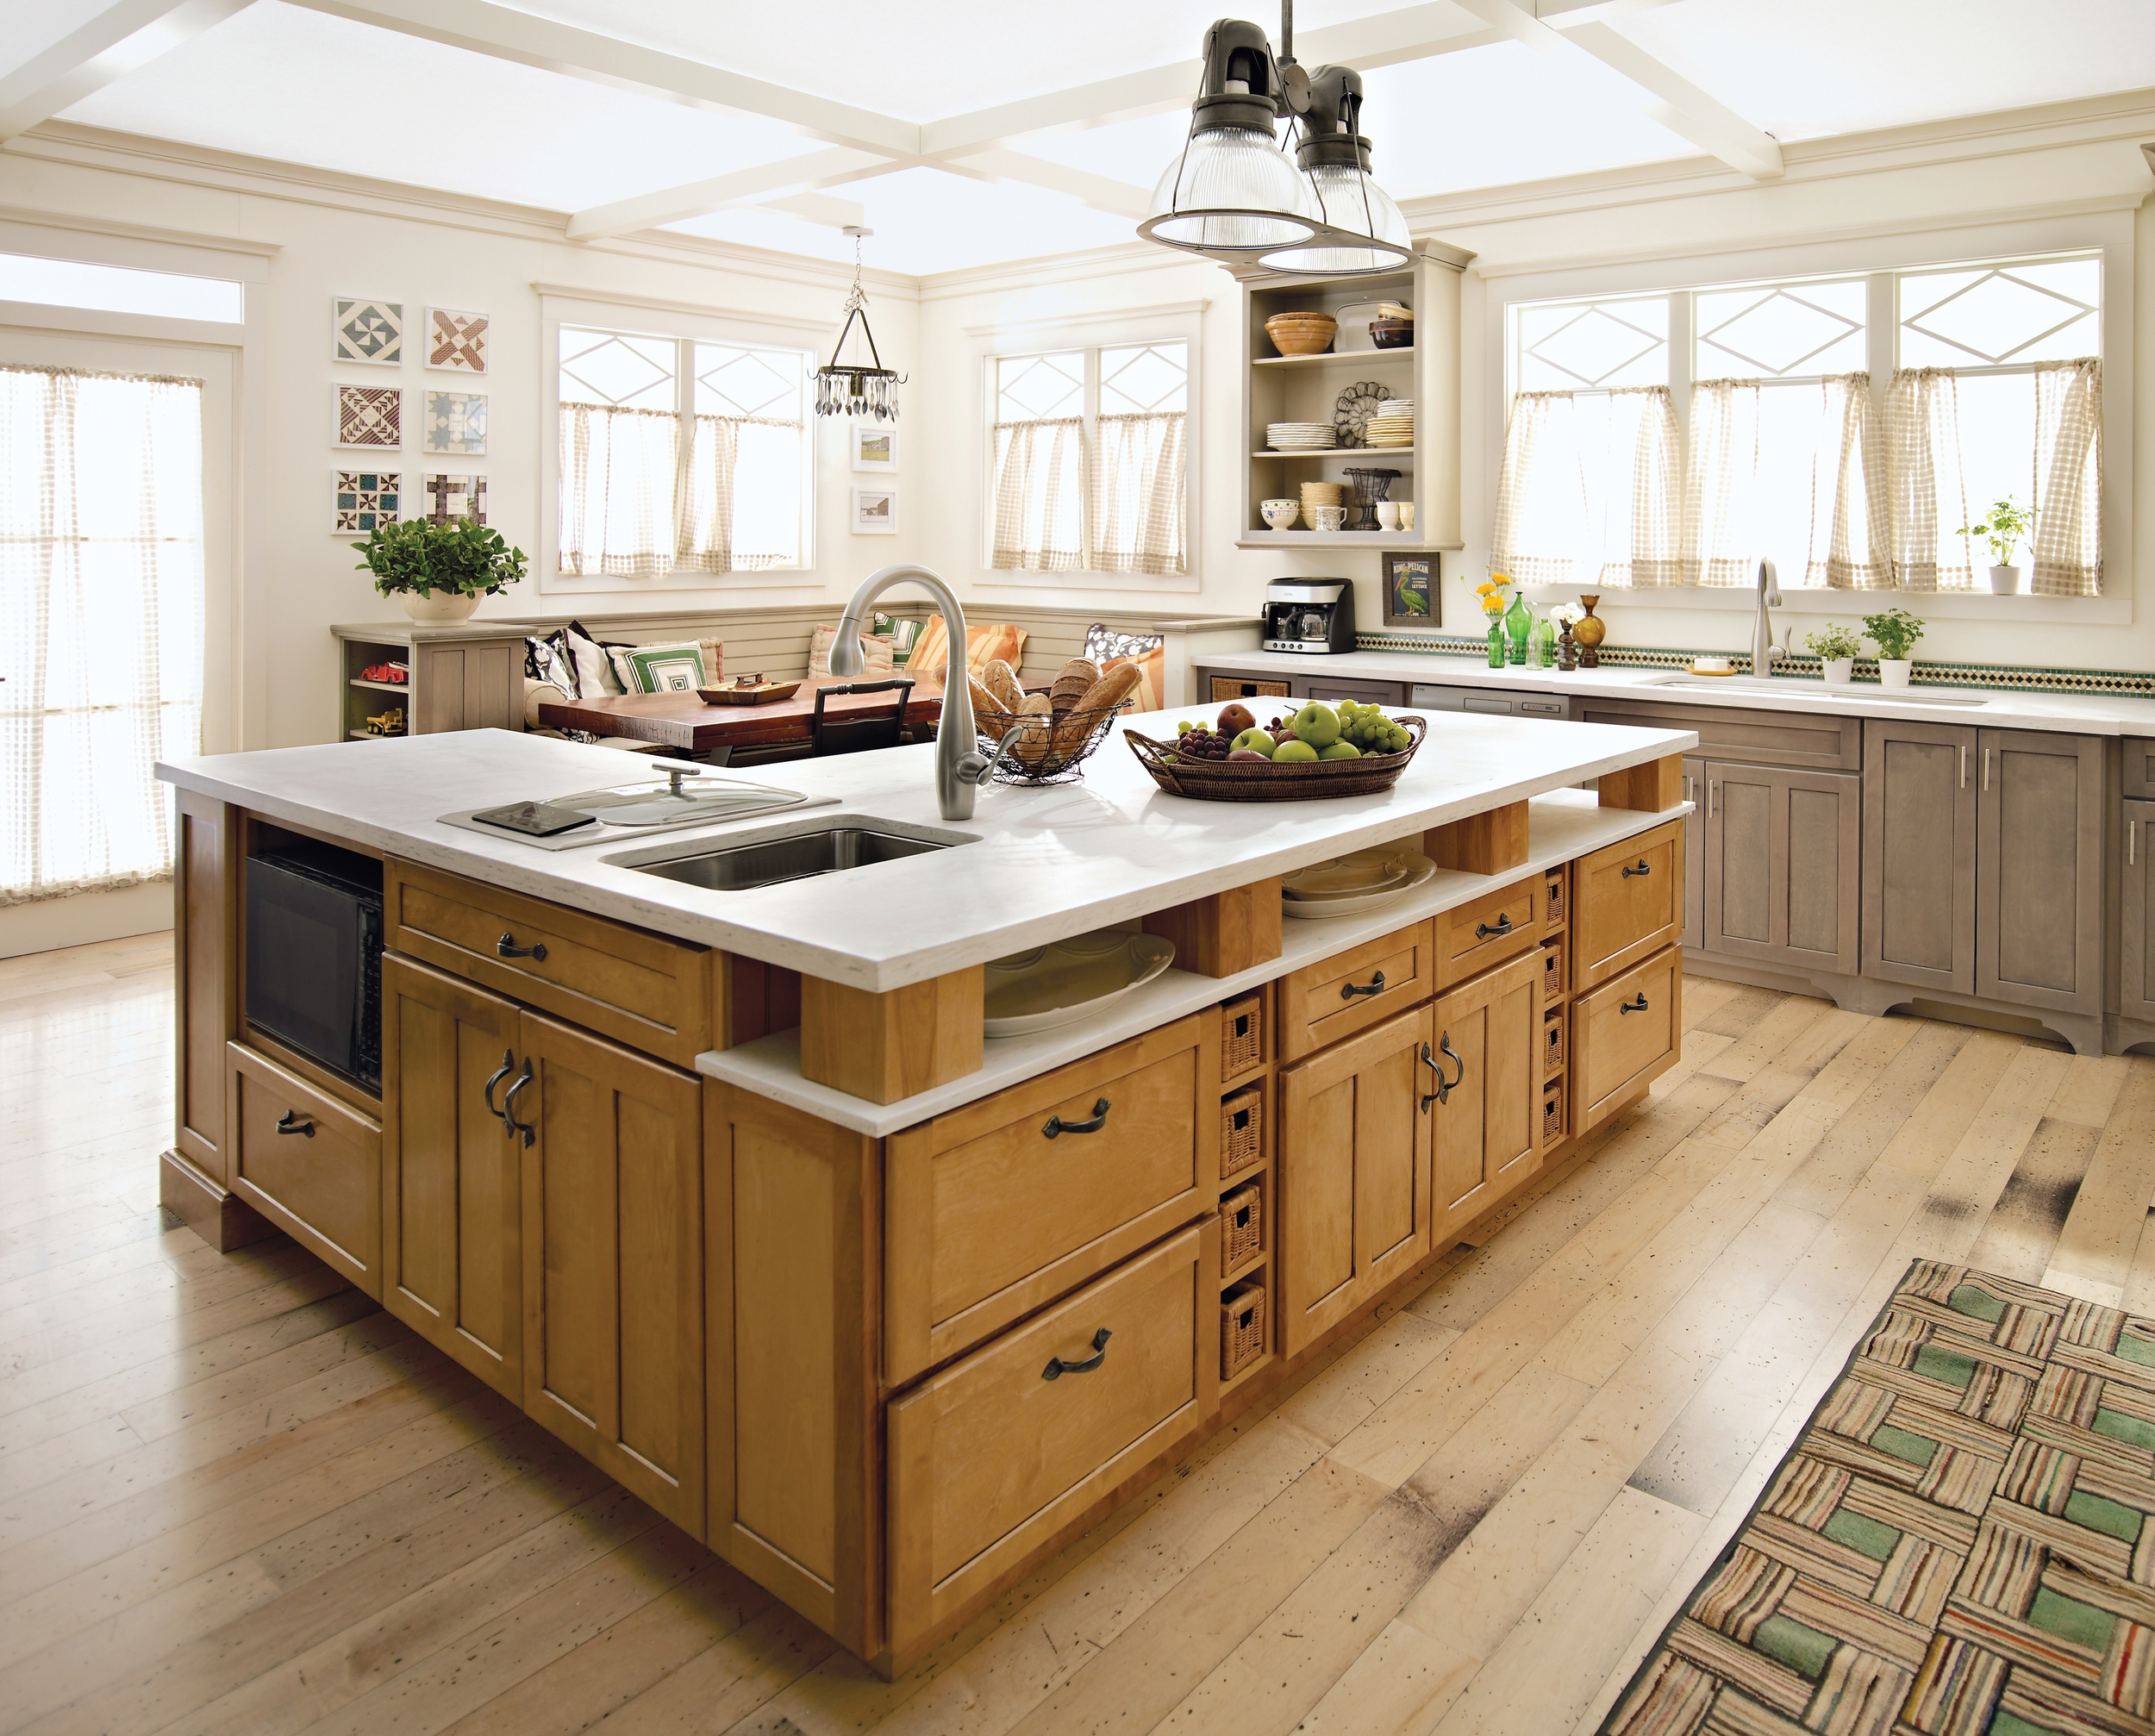 A country inspired design with an open kitchen floorplan and large island